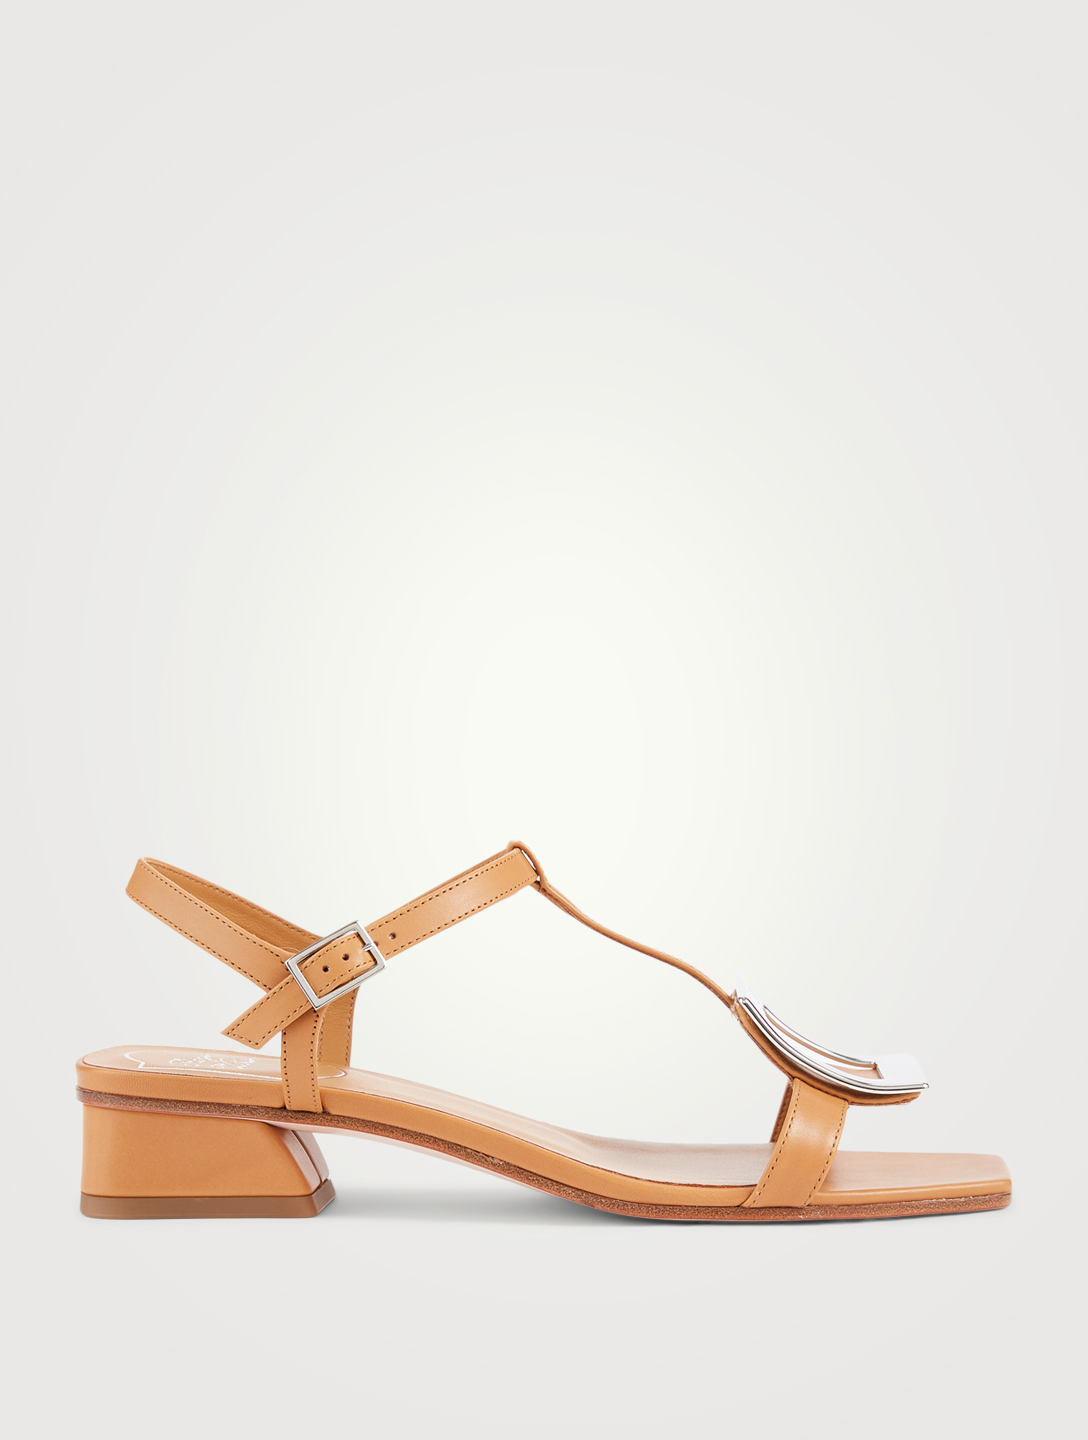 ROGER VIVIER Bikiviv' Leather Heeled Sandals Women's Brown